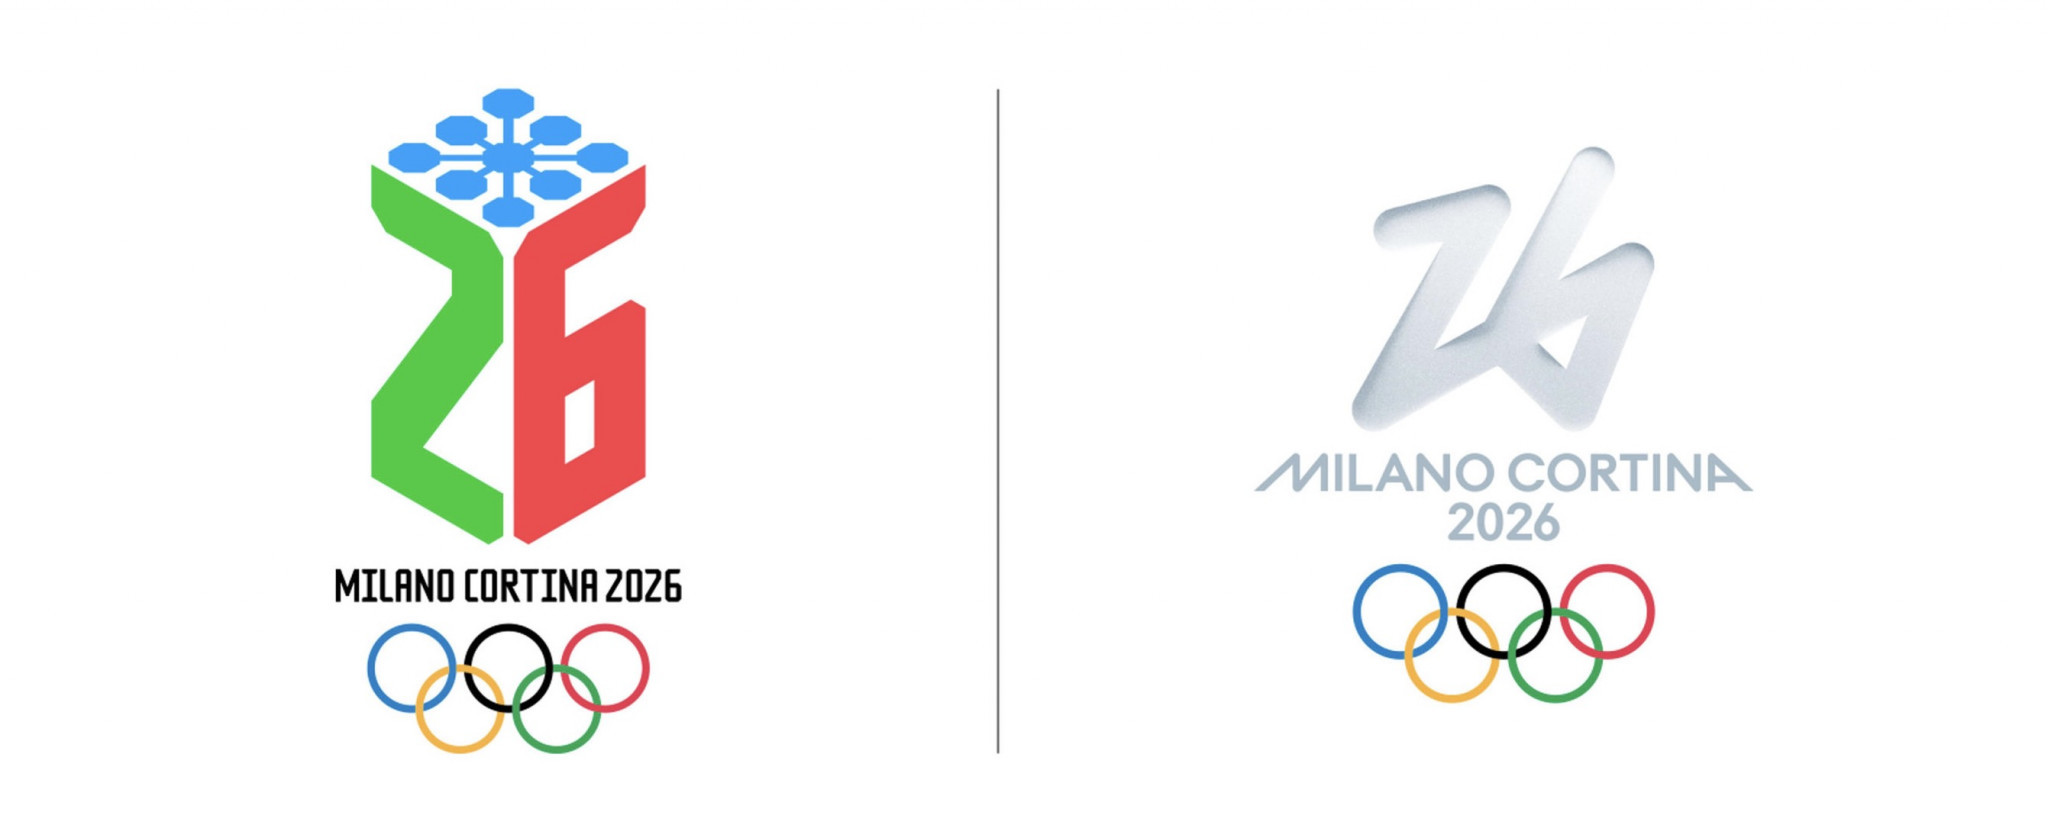 Milan Cortina 2026 opens online vote to decide between two Olympic logos